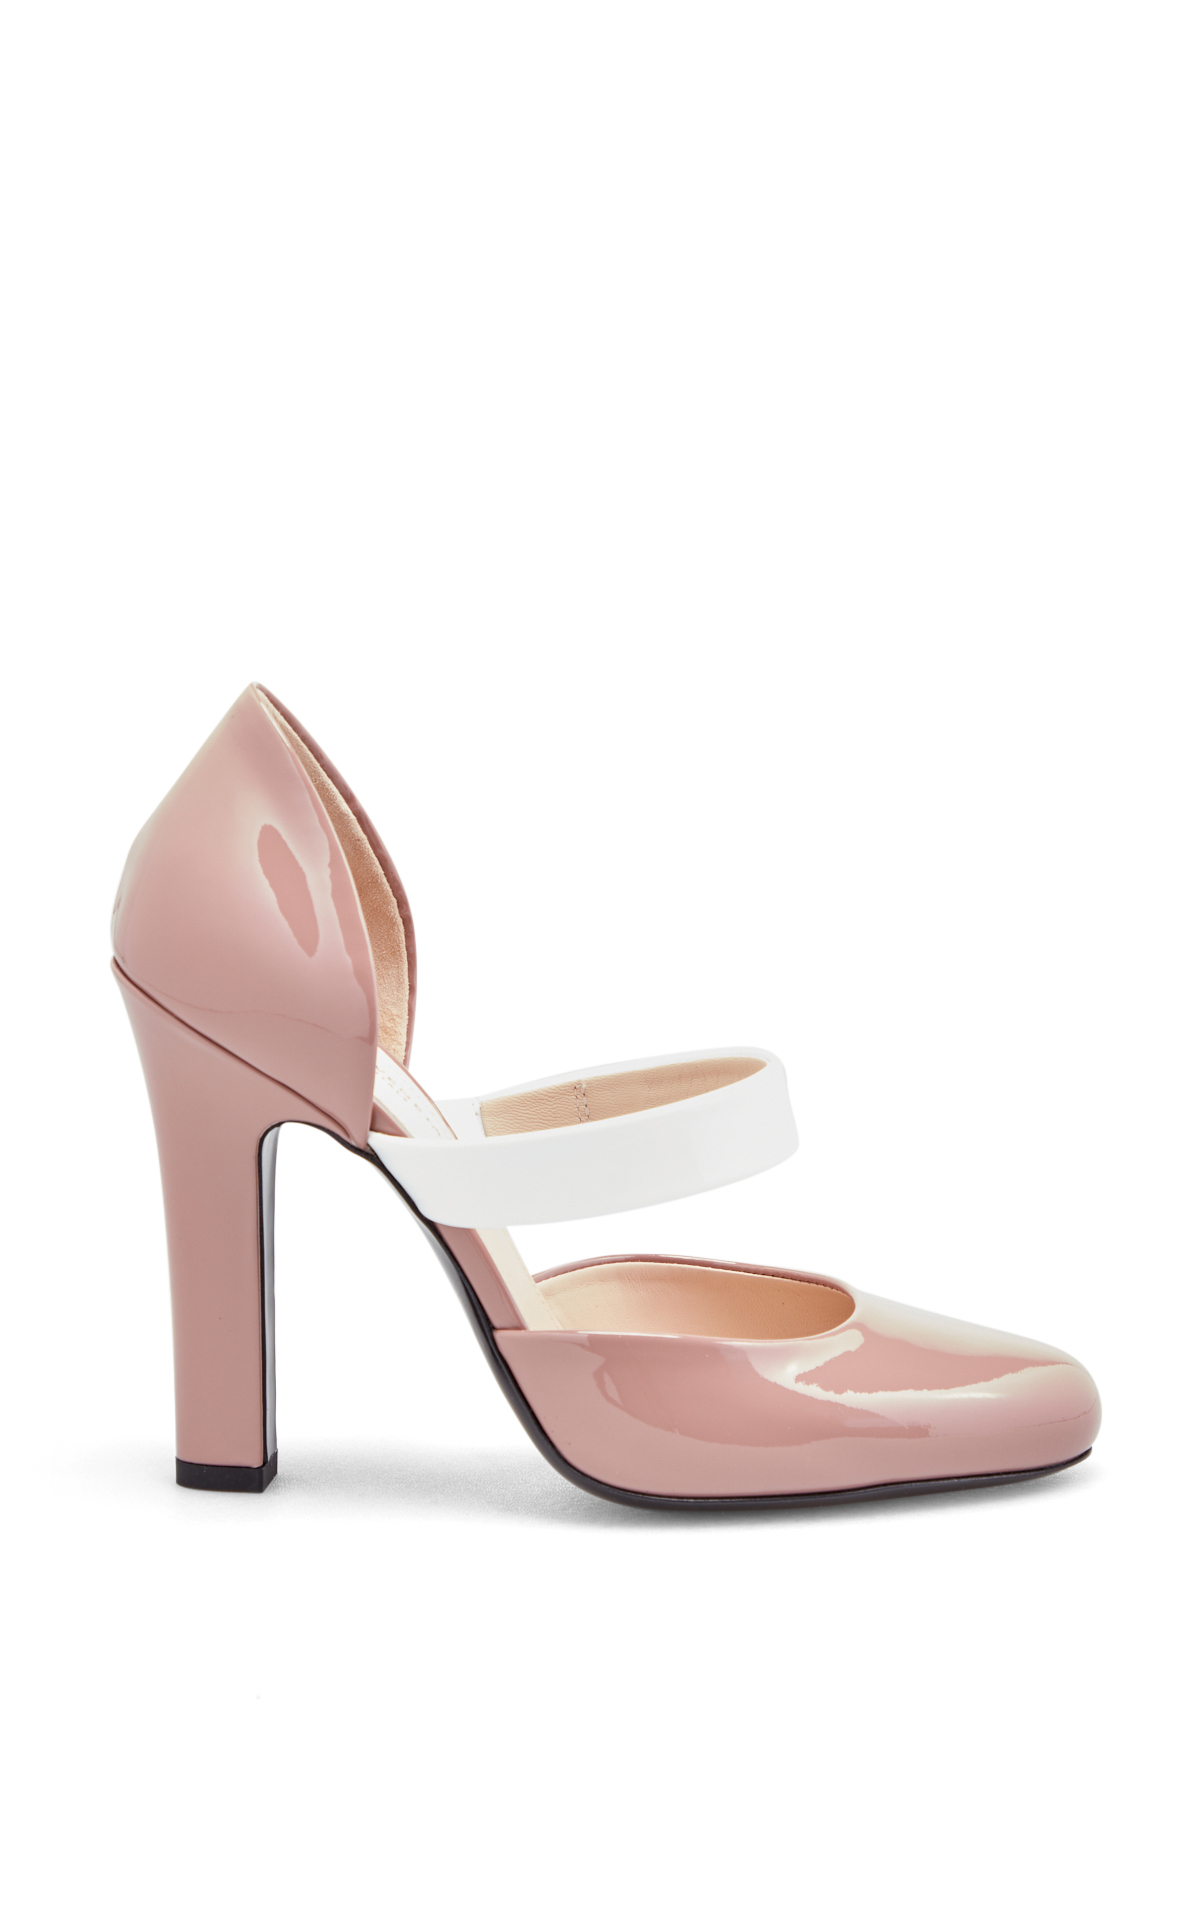 Bottega Veneta Pink patent shoes